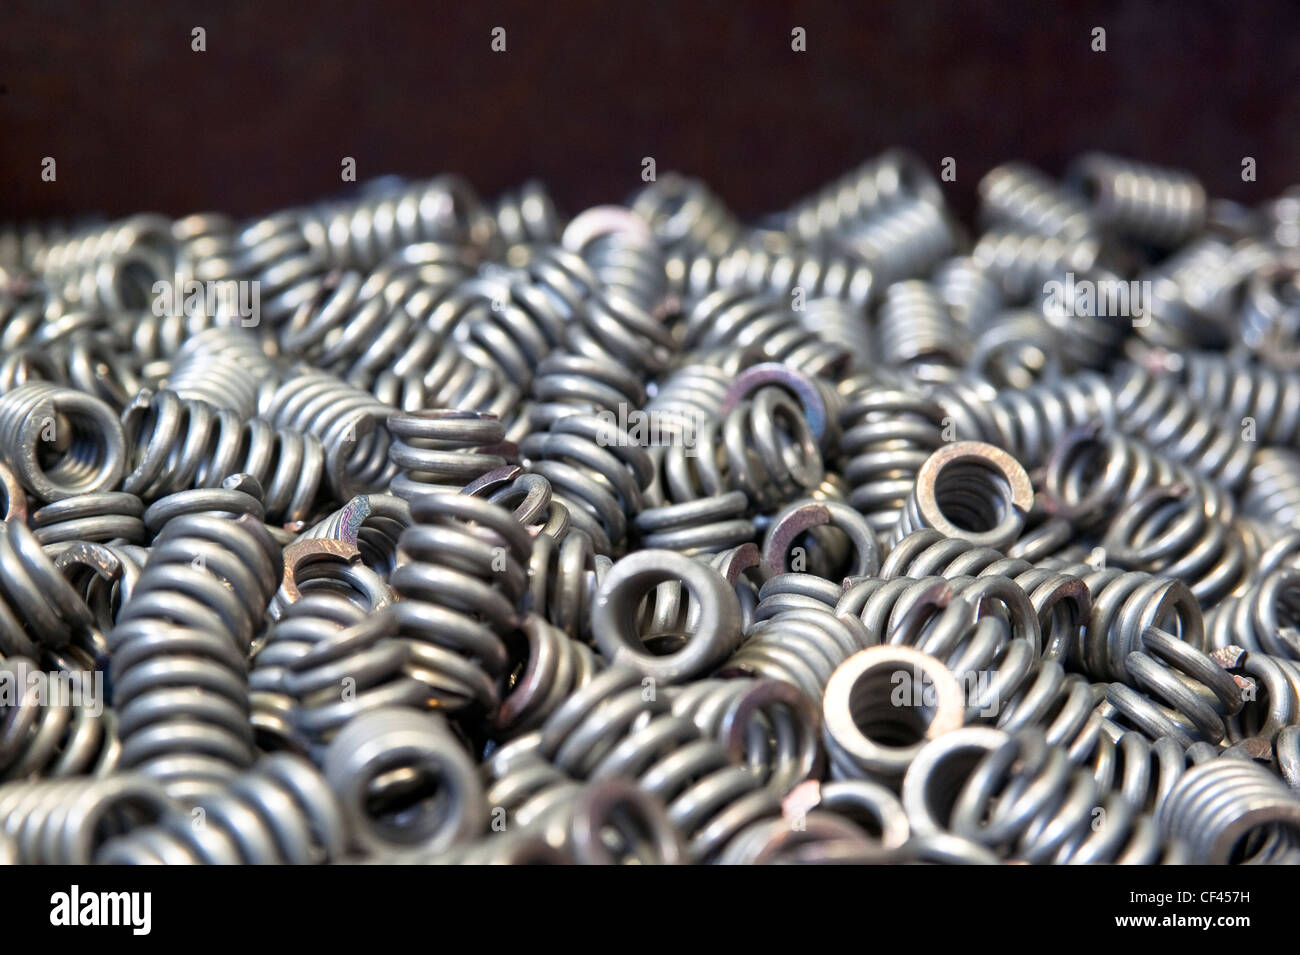 Many chamfered compression springs in a box - Stock Image